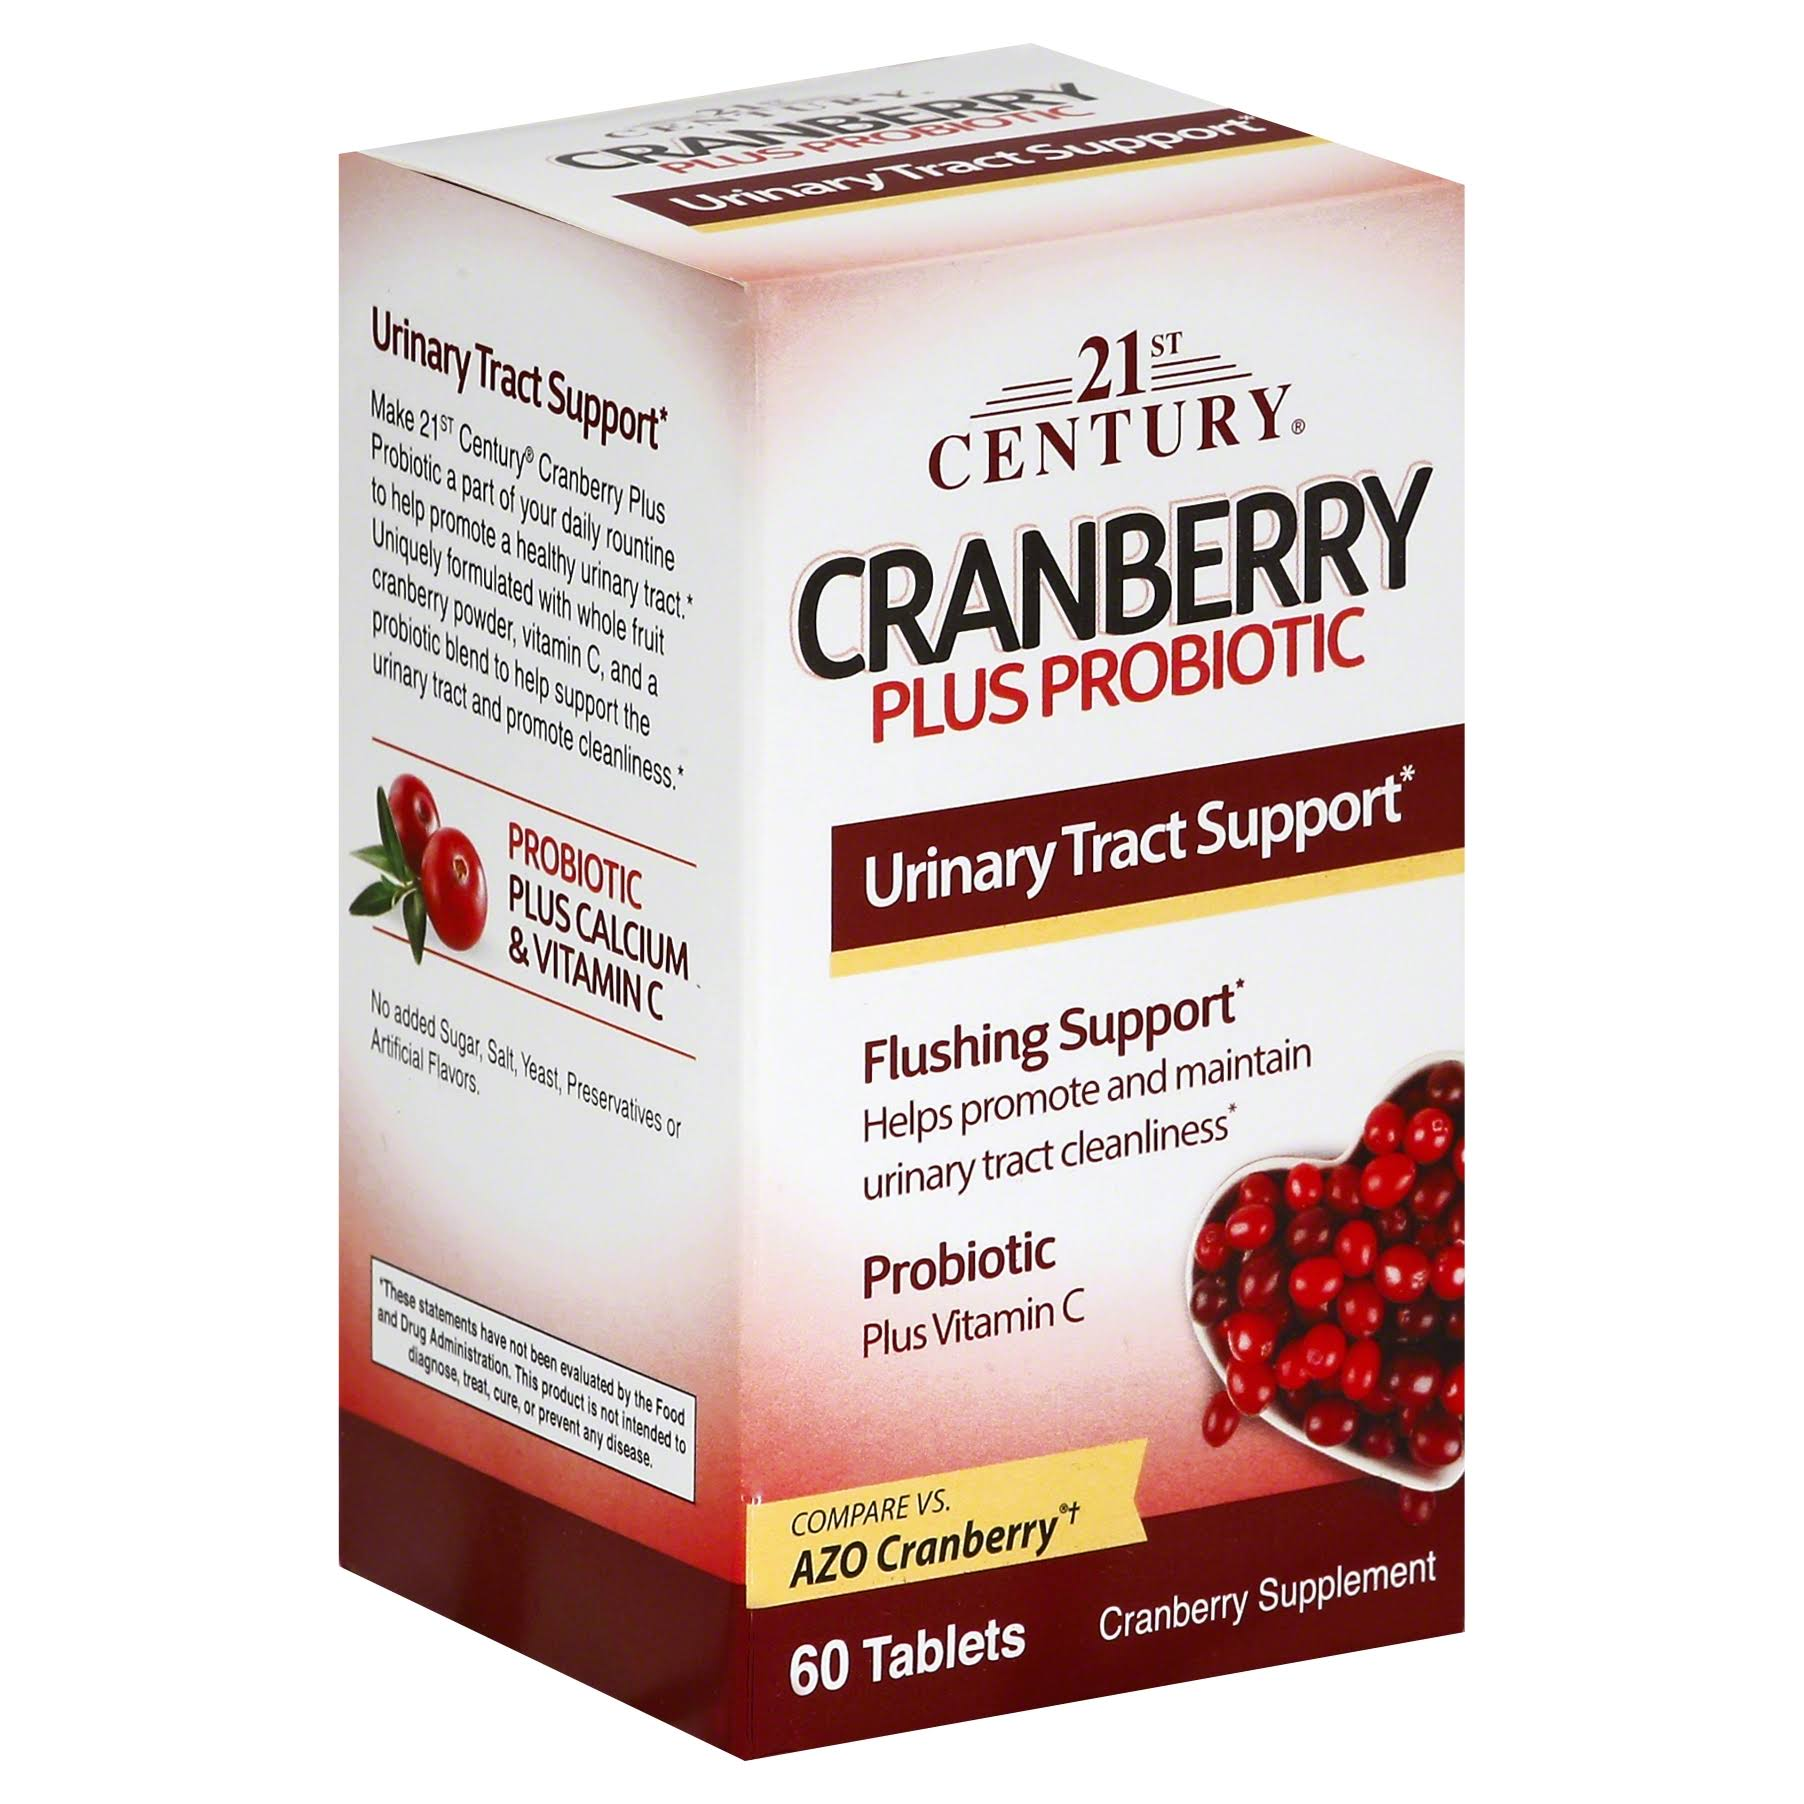 21st Century Cranberry Plus Probiotic Supplement - 60 Tablets